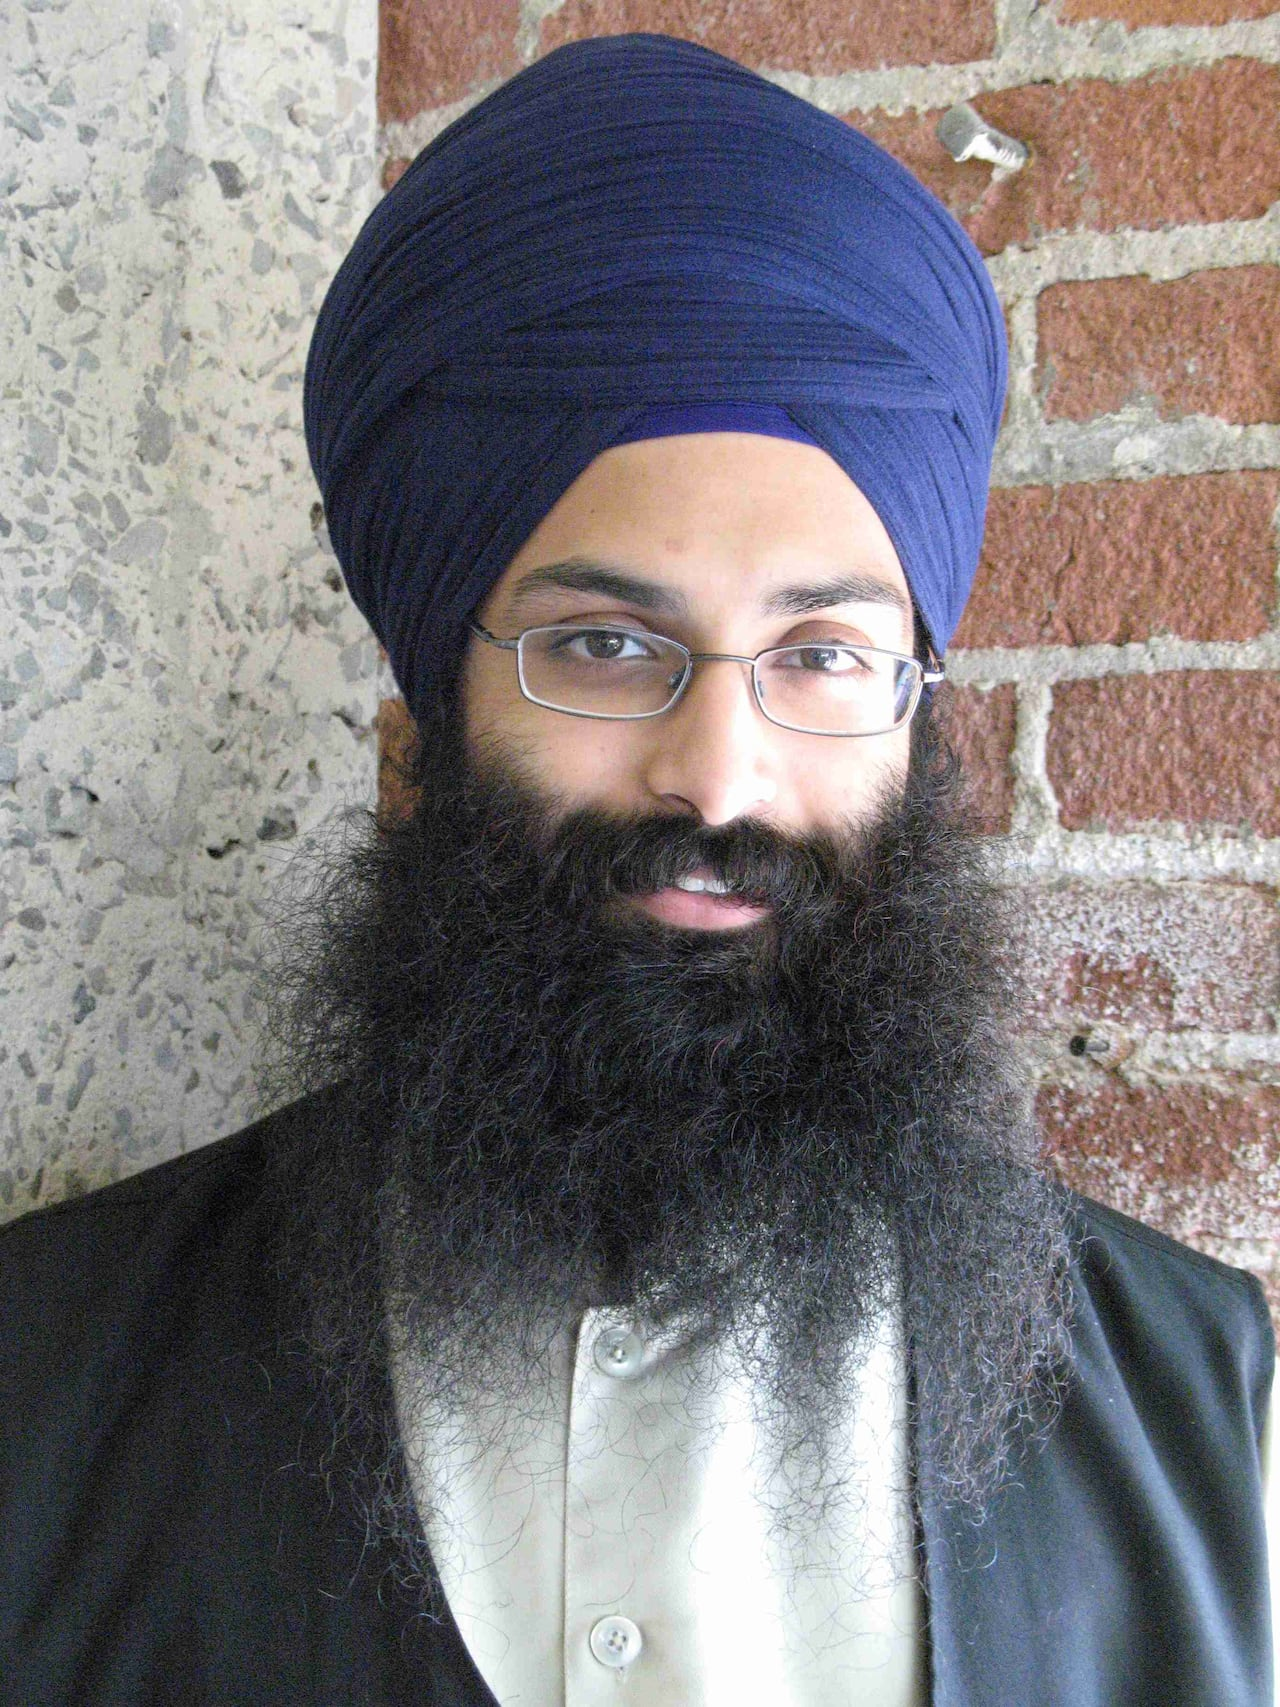 World Sikh Organization welcomes Canadian decision to allow